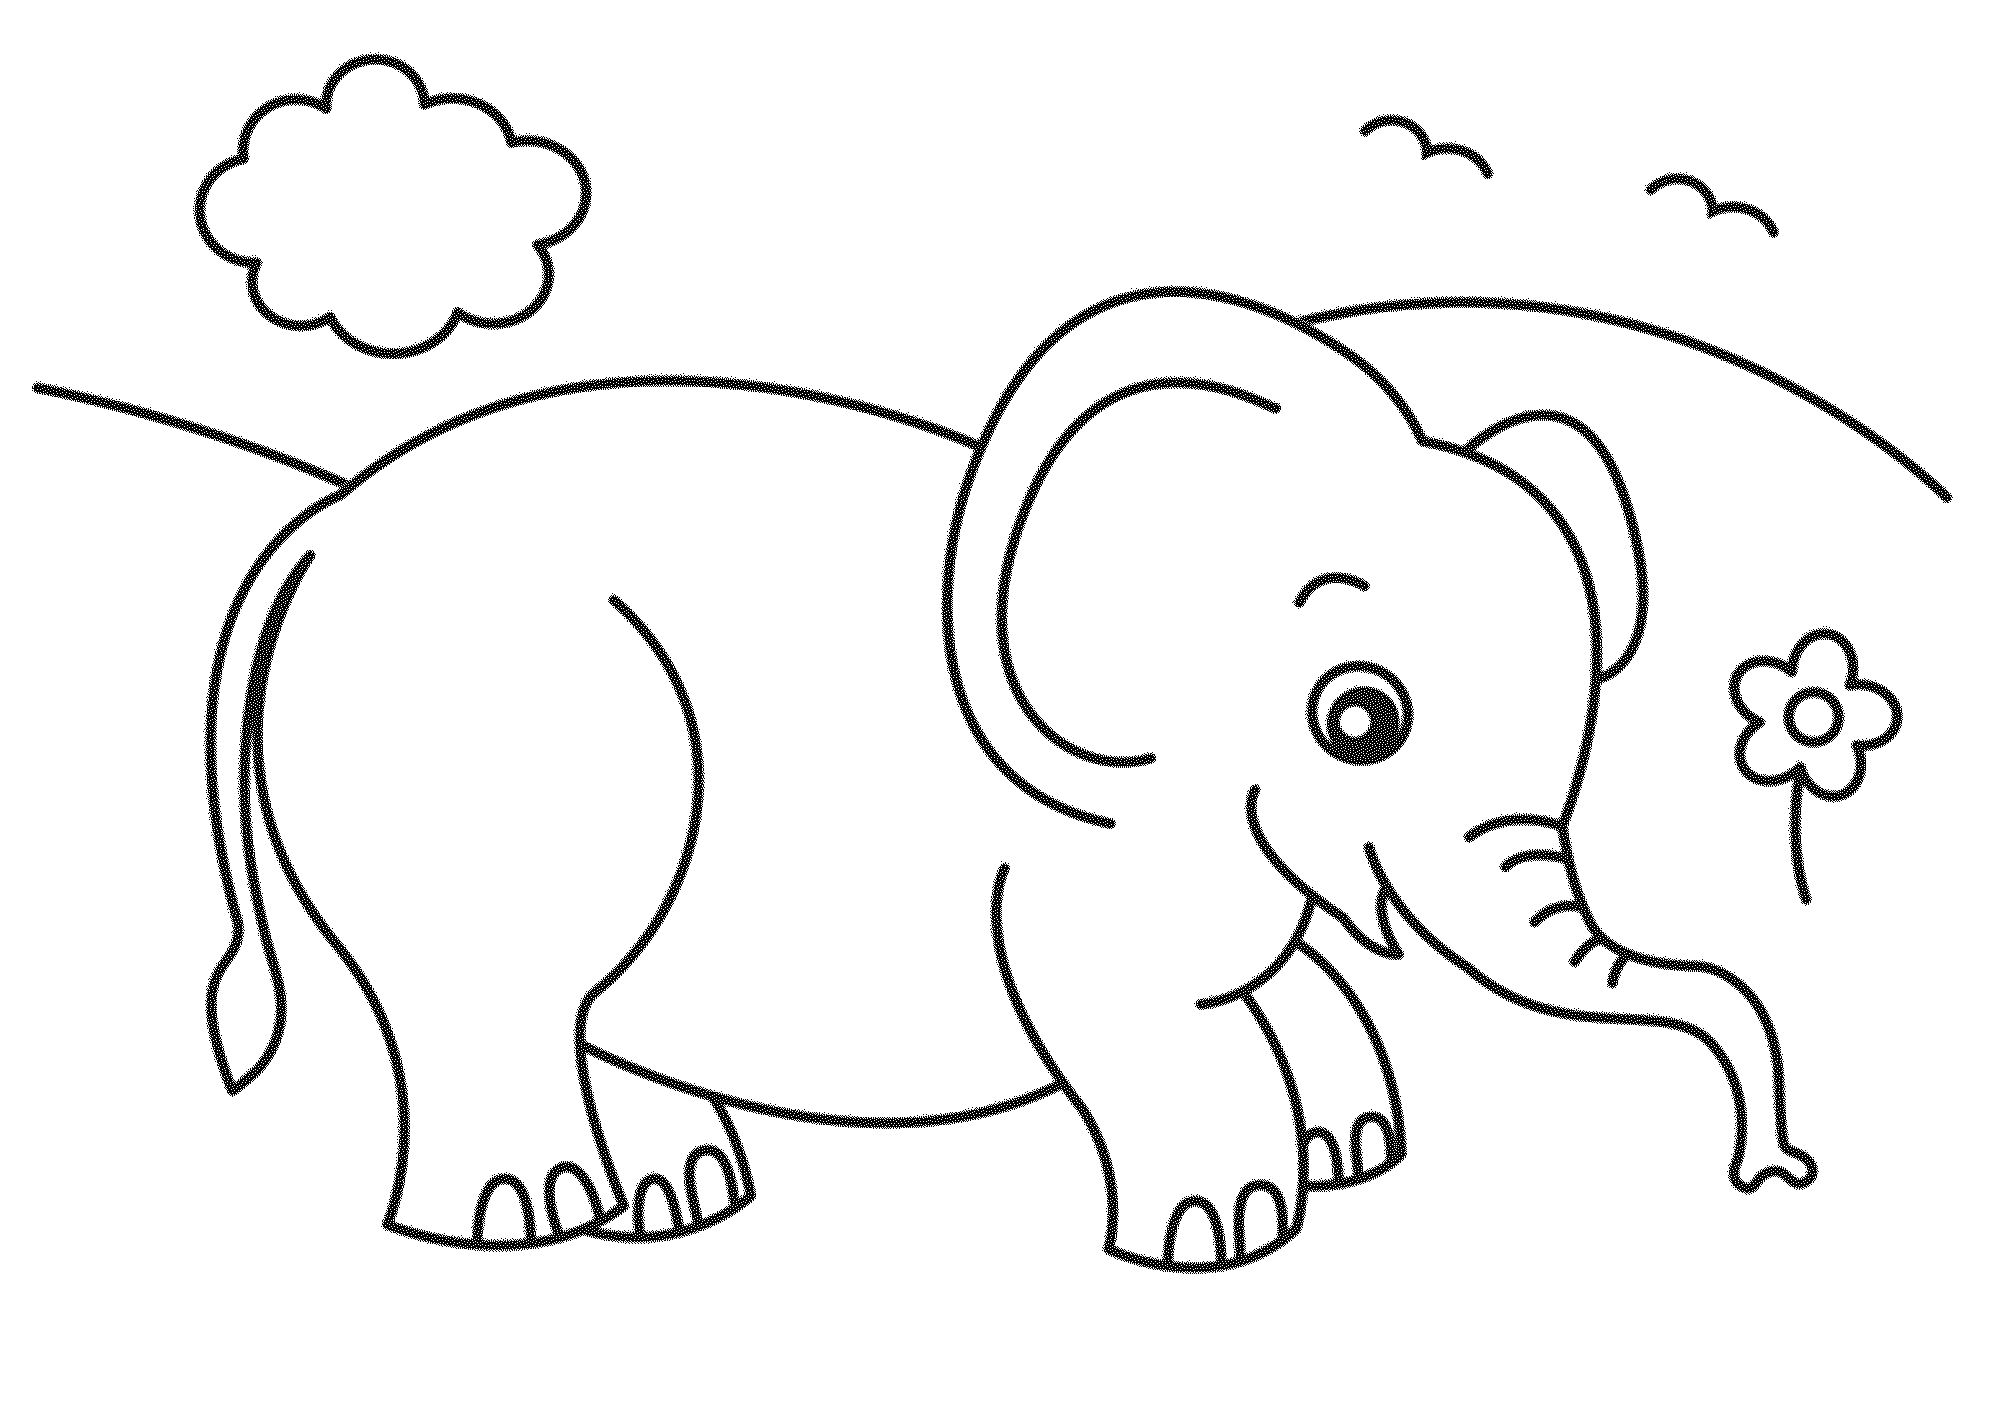 Cute Baby Elephant Coloring Pages Easy Elephant Coloring Pages Ideas For Beginners Elephant Coloring Page Elephant Drawing Printable Coloring Pages